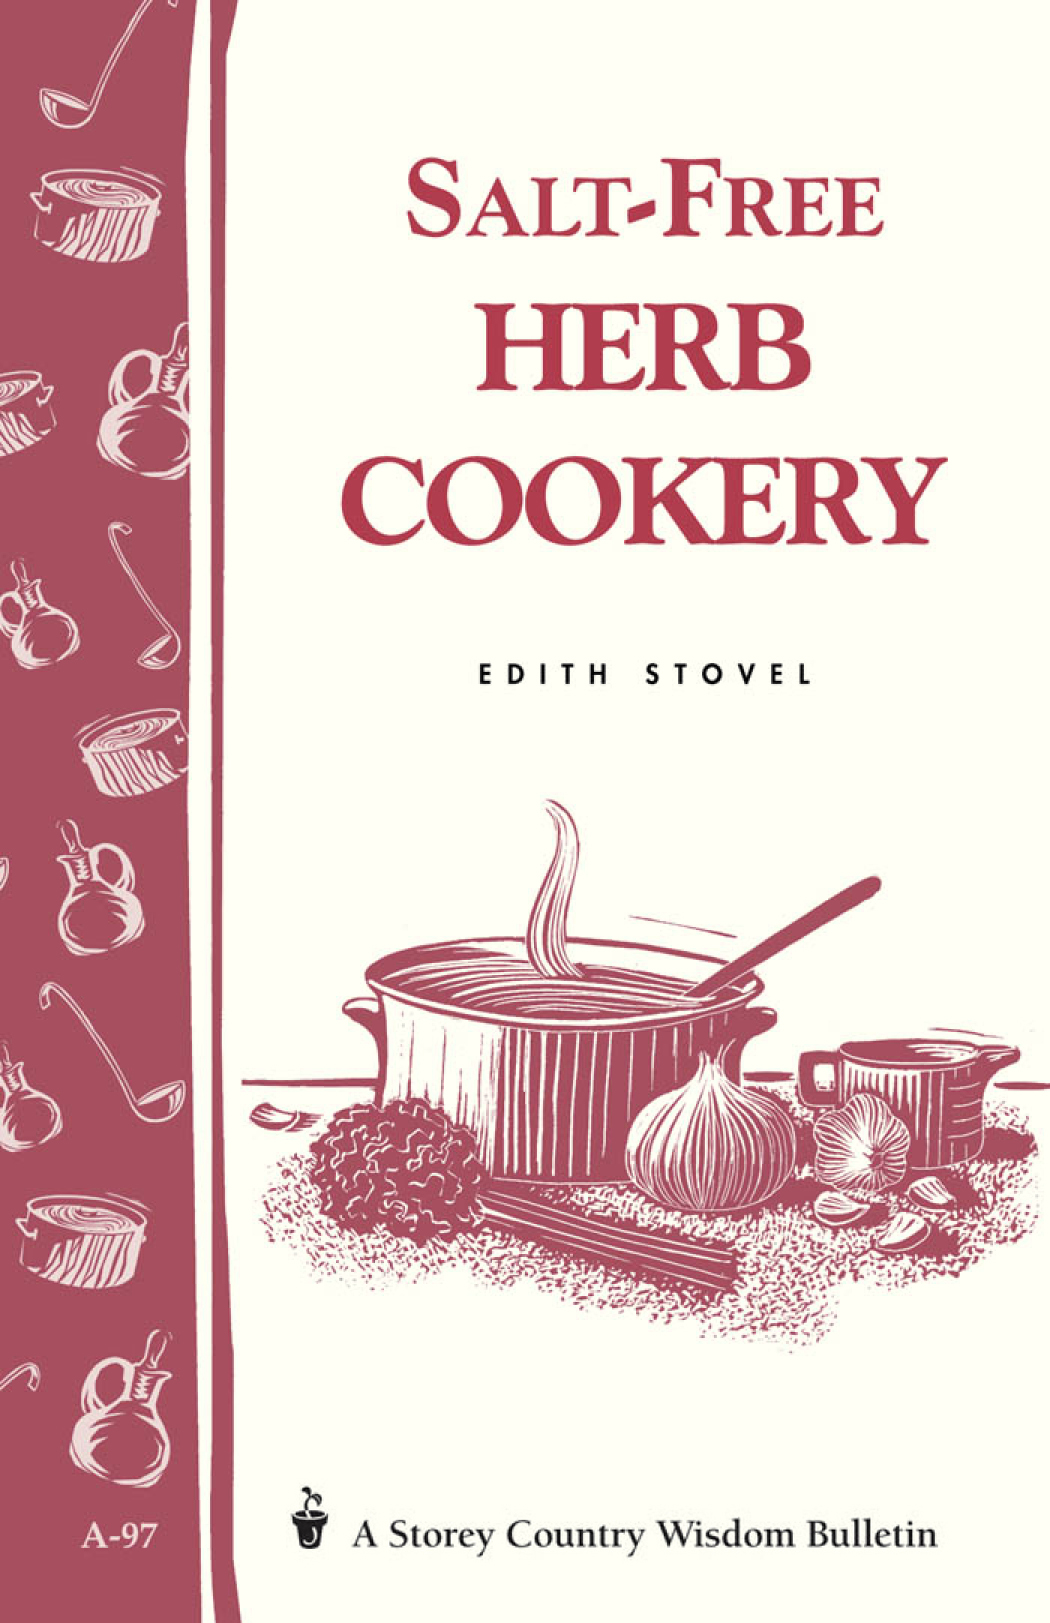 Salt-Free Herb Cookery Storey's Country Wisdom Bulletin A-97 - Edith Stovel